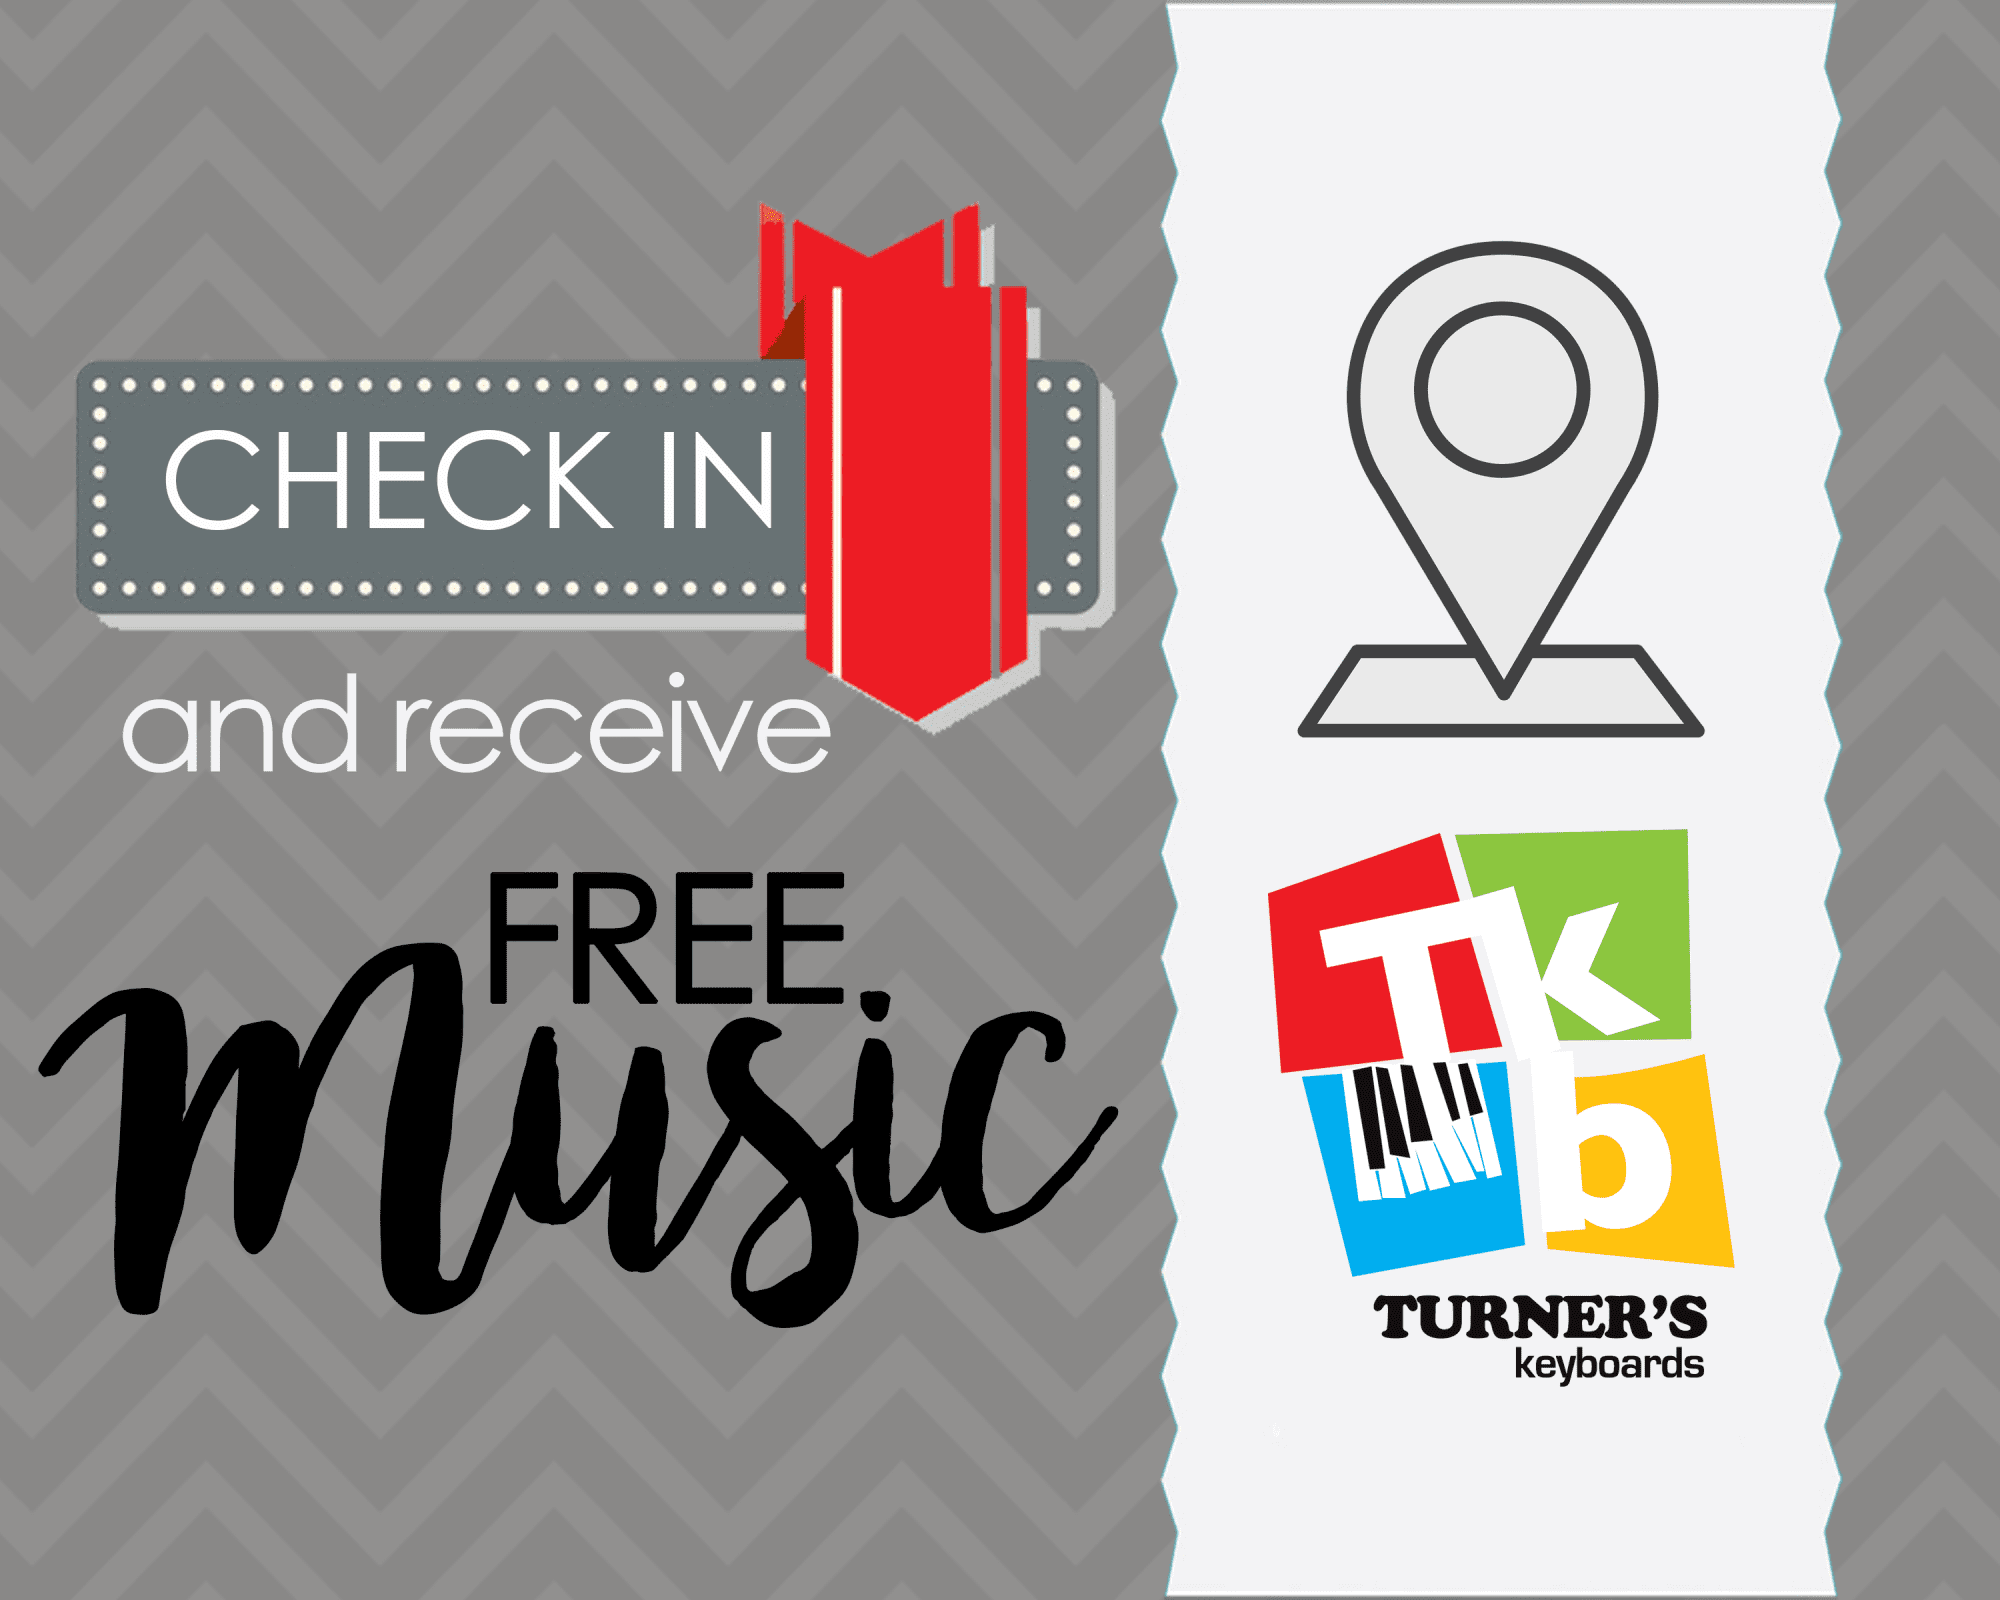 Have You Checked-In for FREE Sheet Music at Turner's Keyboards?